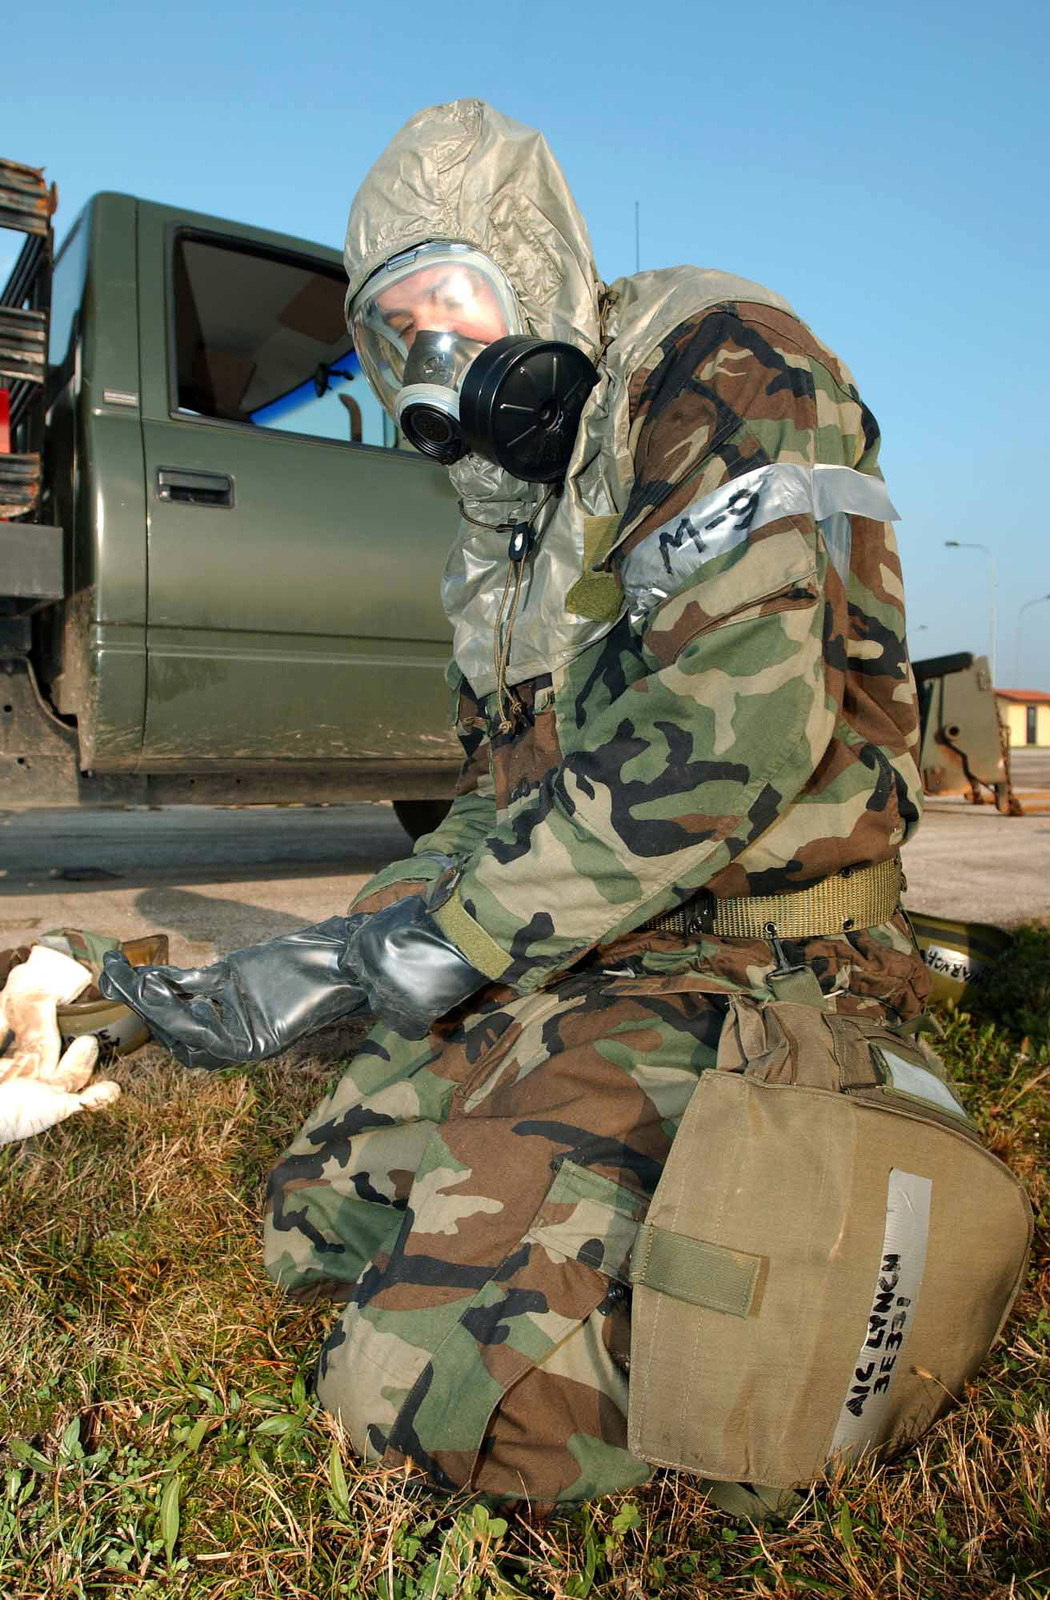 Completing his Mission-Oriented Protective Posture response level 4 (MOPP-4) suit, US Air Force (USAF) AIRMAN First Class (A1C) Chad R. Lynch, 31st Civil Engineer Squadron (CES), Rapid Runway Response (RRR) team member dons his rubber gloves during a simulated chemical attack. The attack used to hone the skills of the 31st CES Triple-R in event of an attack as they train for the upcoming NATO Tactical Evaluation